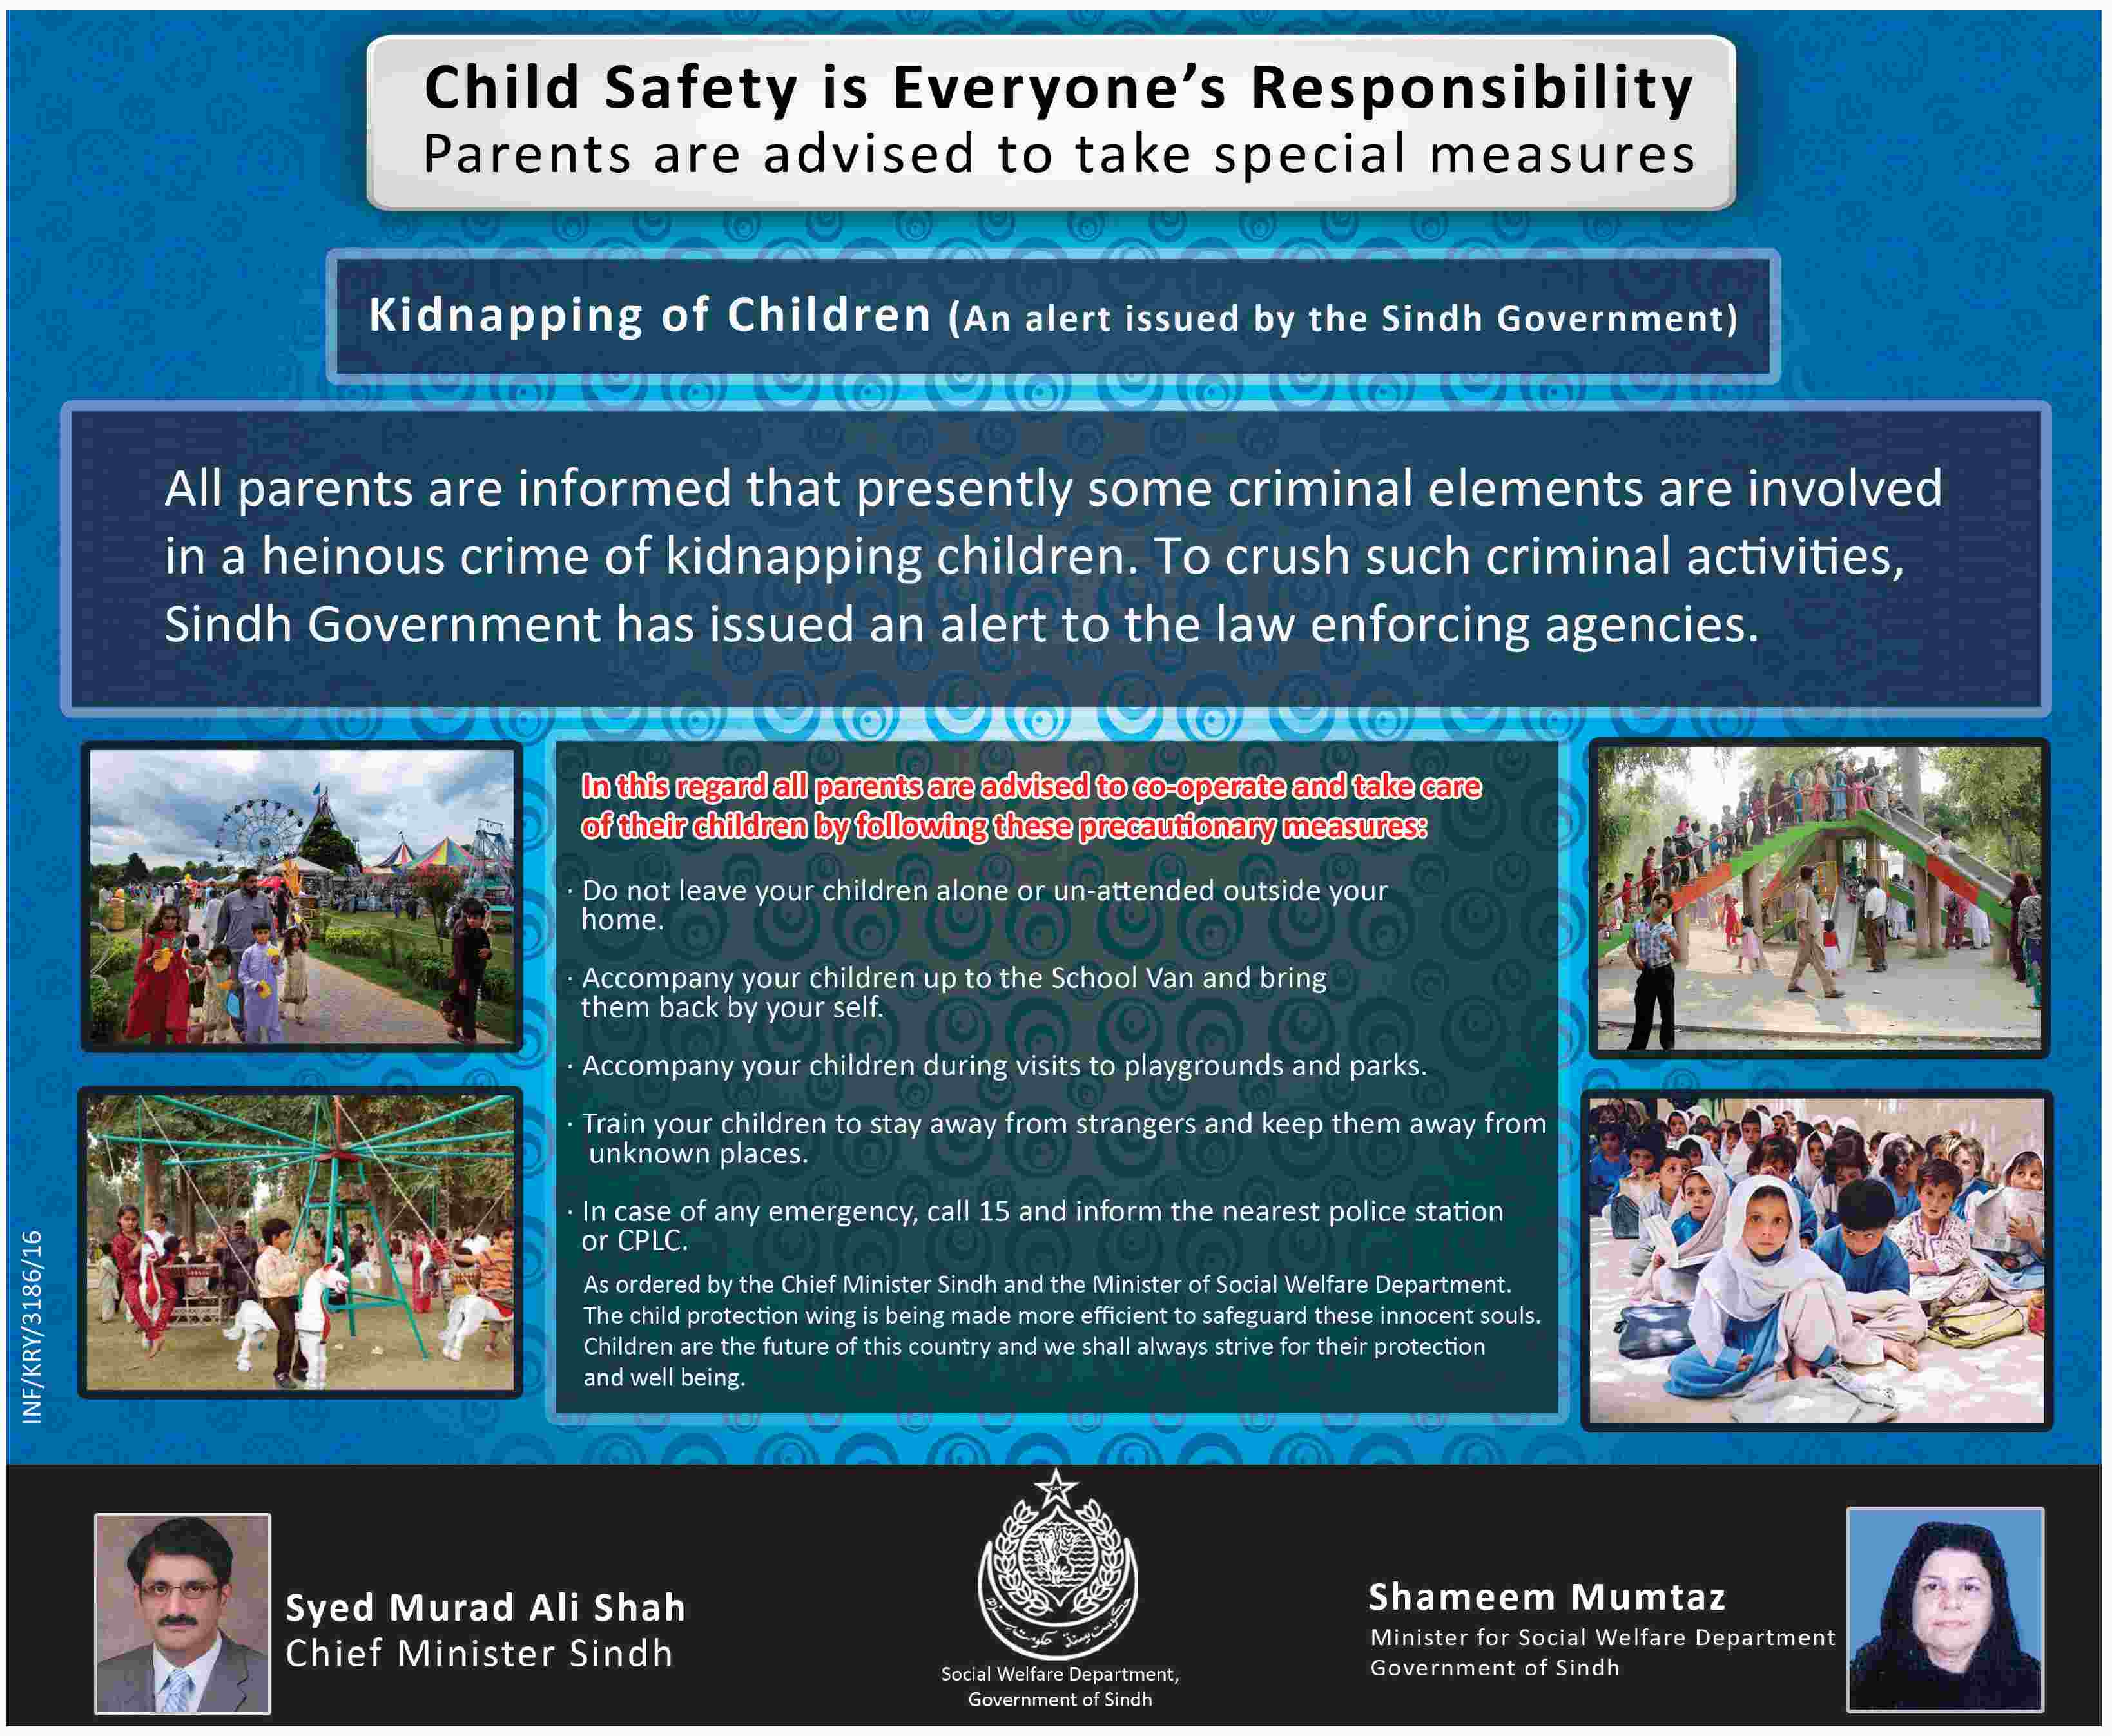 Kidnapping-of-Children-Alert-Issued-by-Sindh-Government